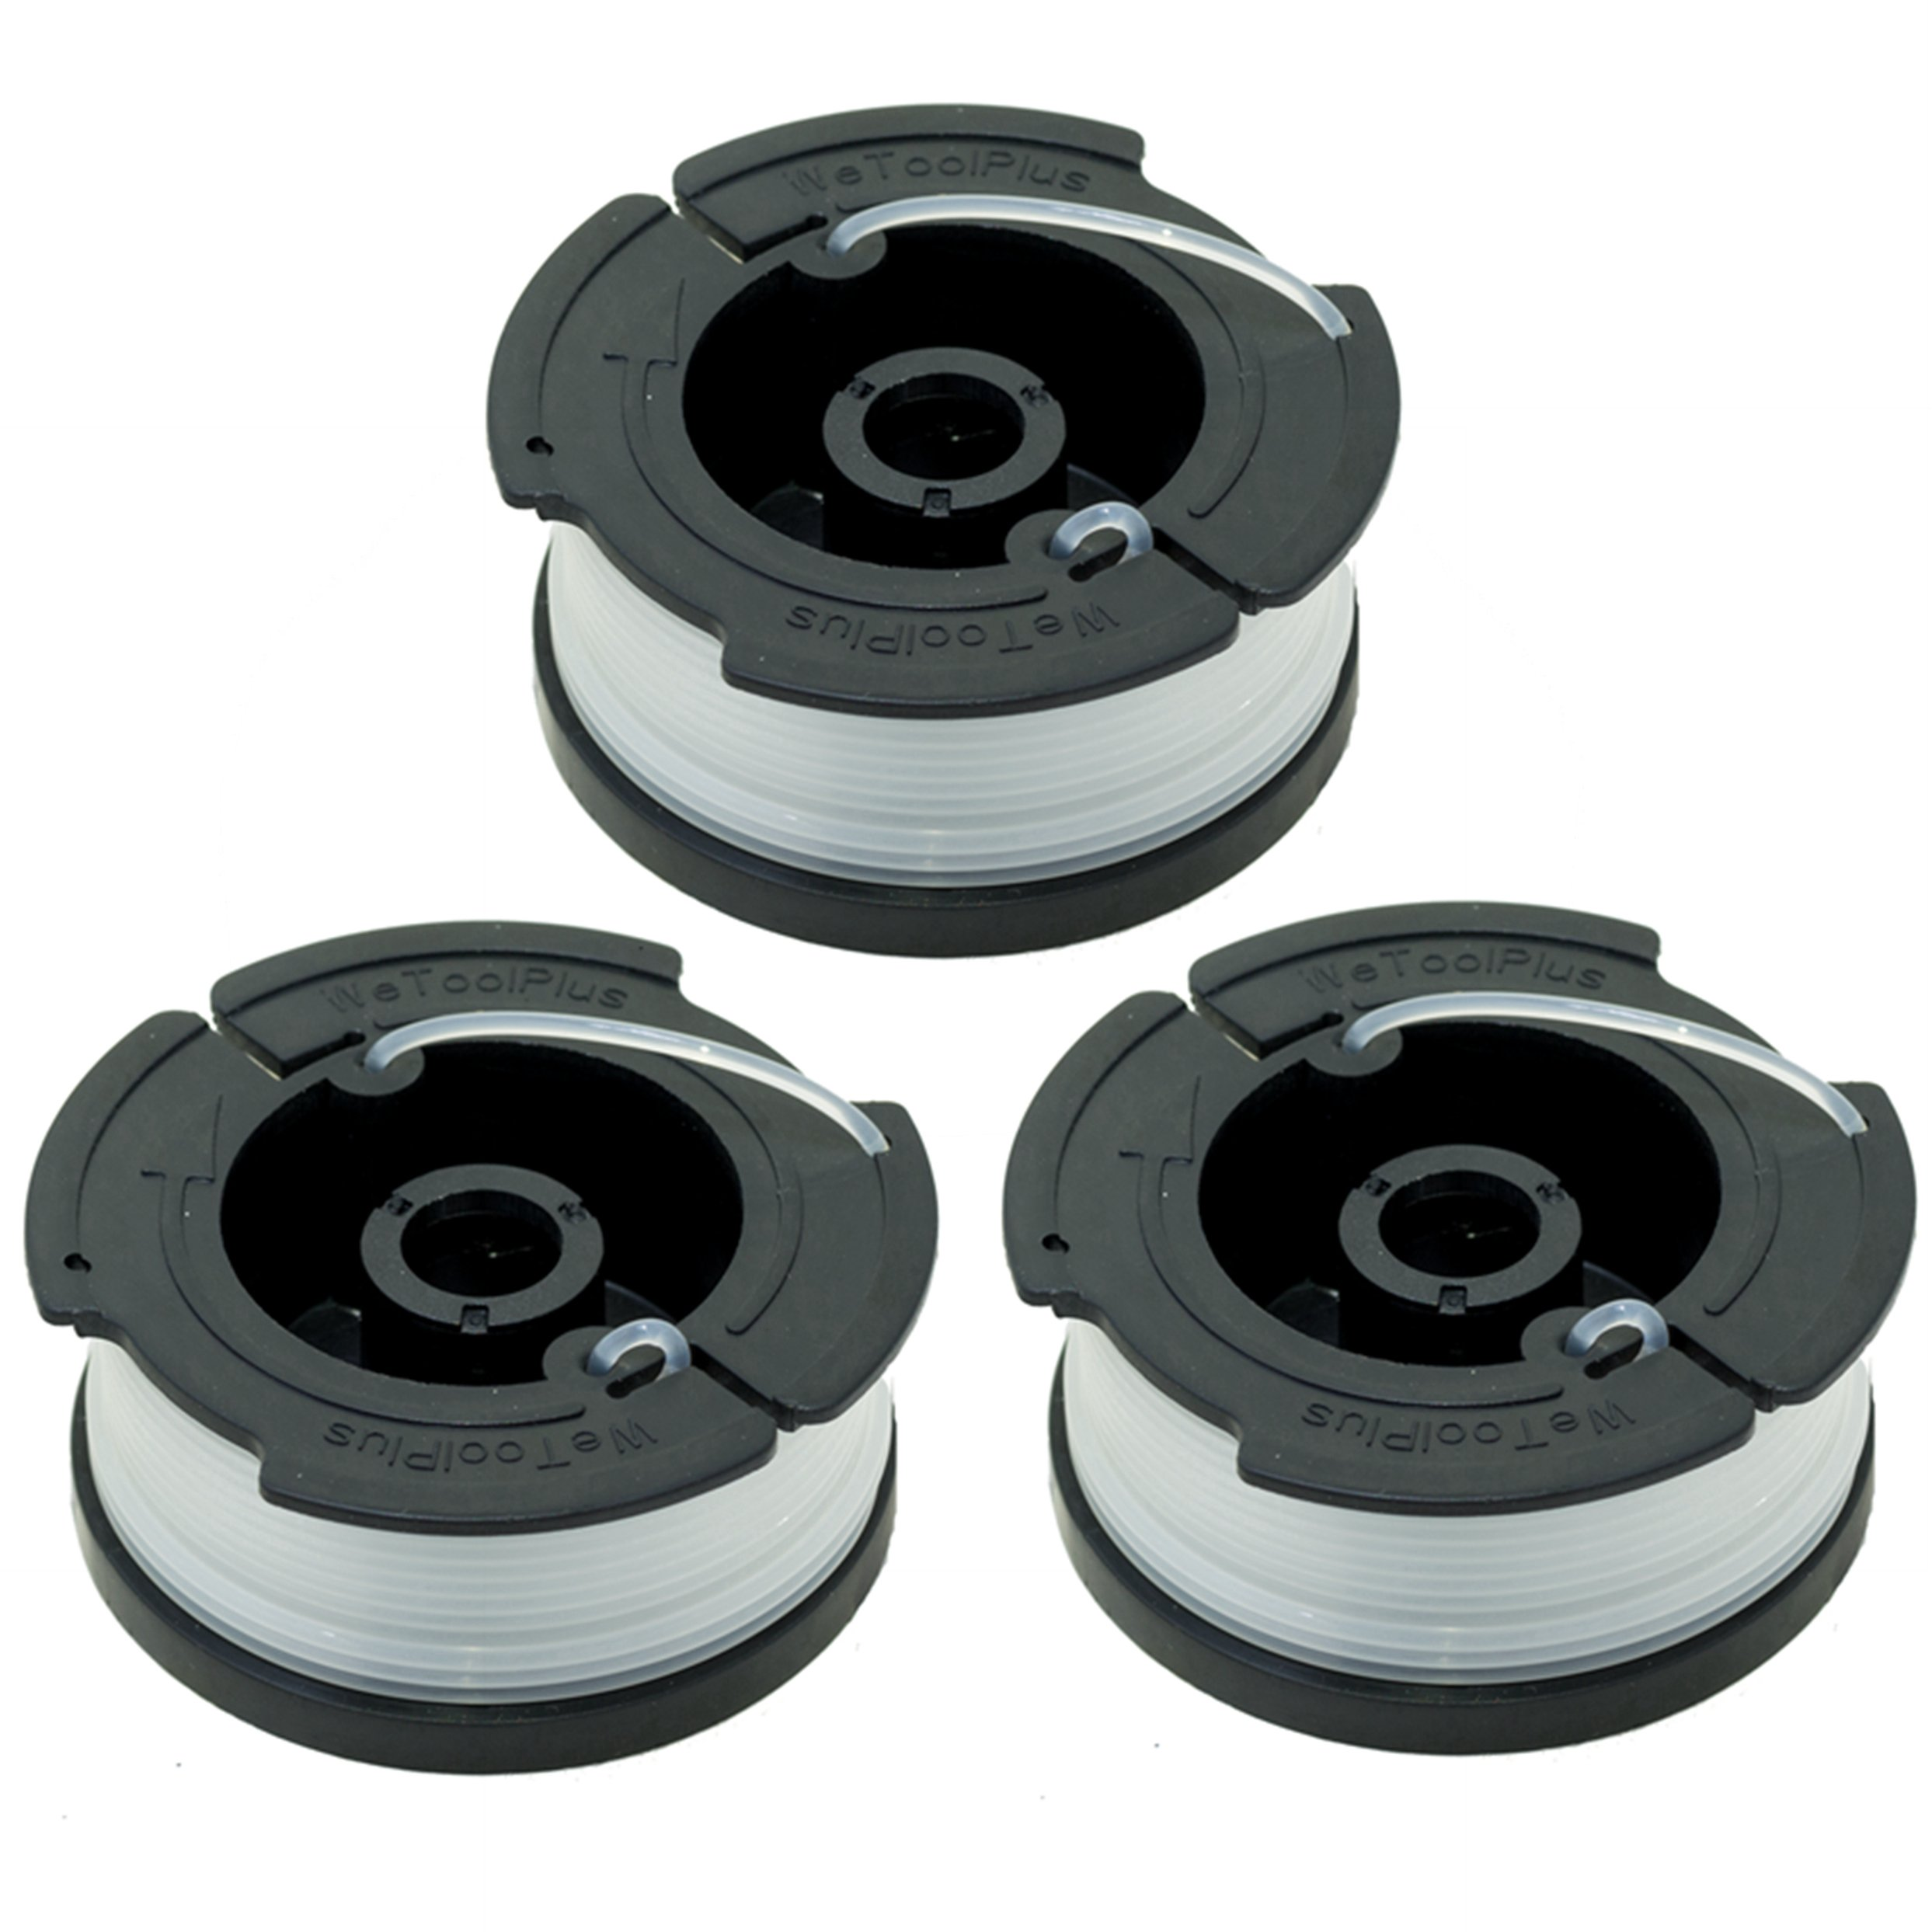 LBK 0.065'' Spool for BLACK+DECKER String Trimmers (Replacement Autofeed Spool), compatible with BLACK+DECKER AF-100,3-Pack